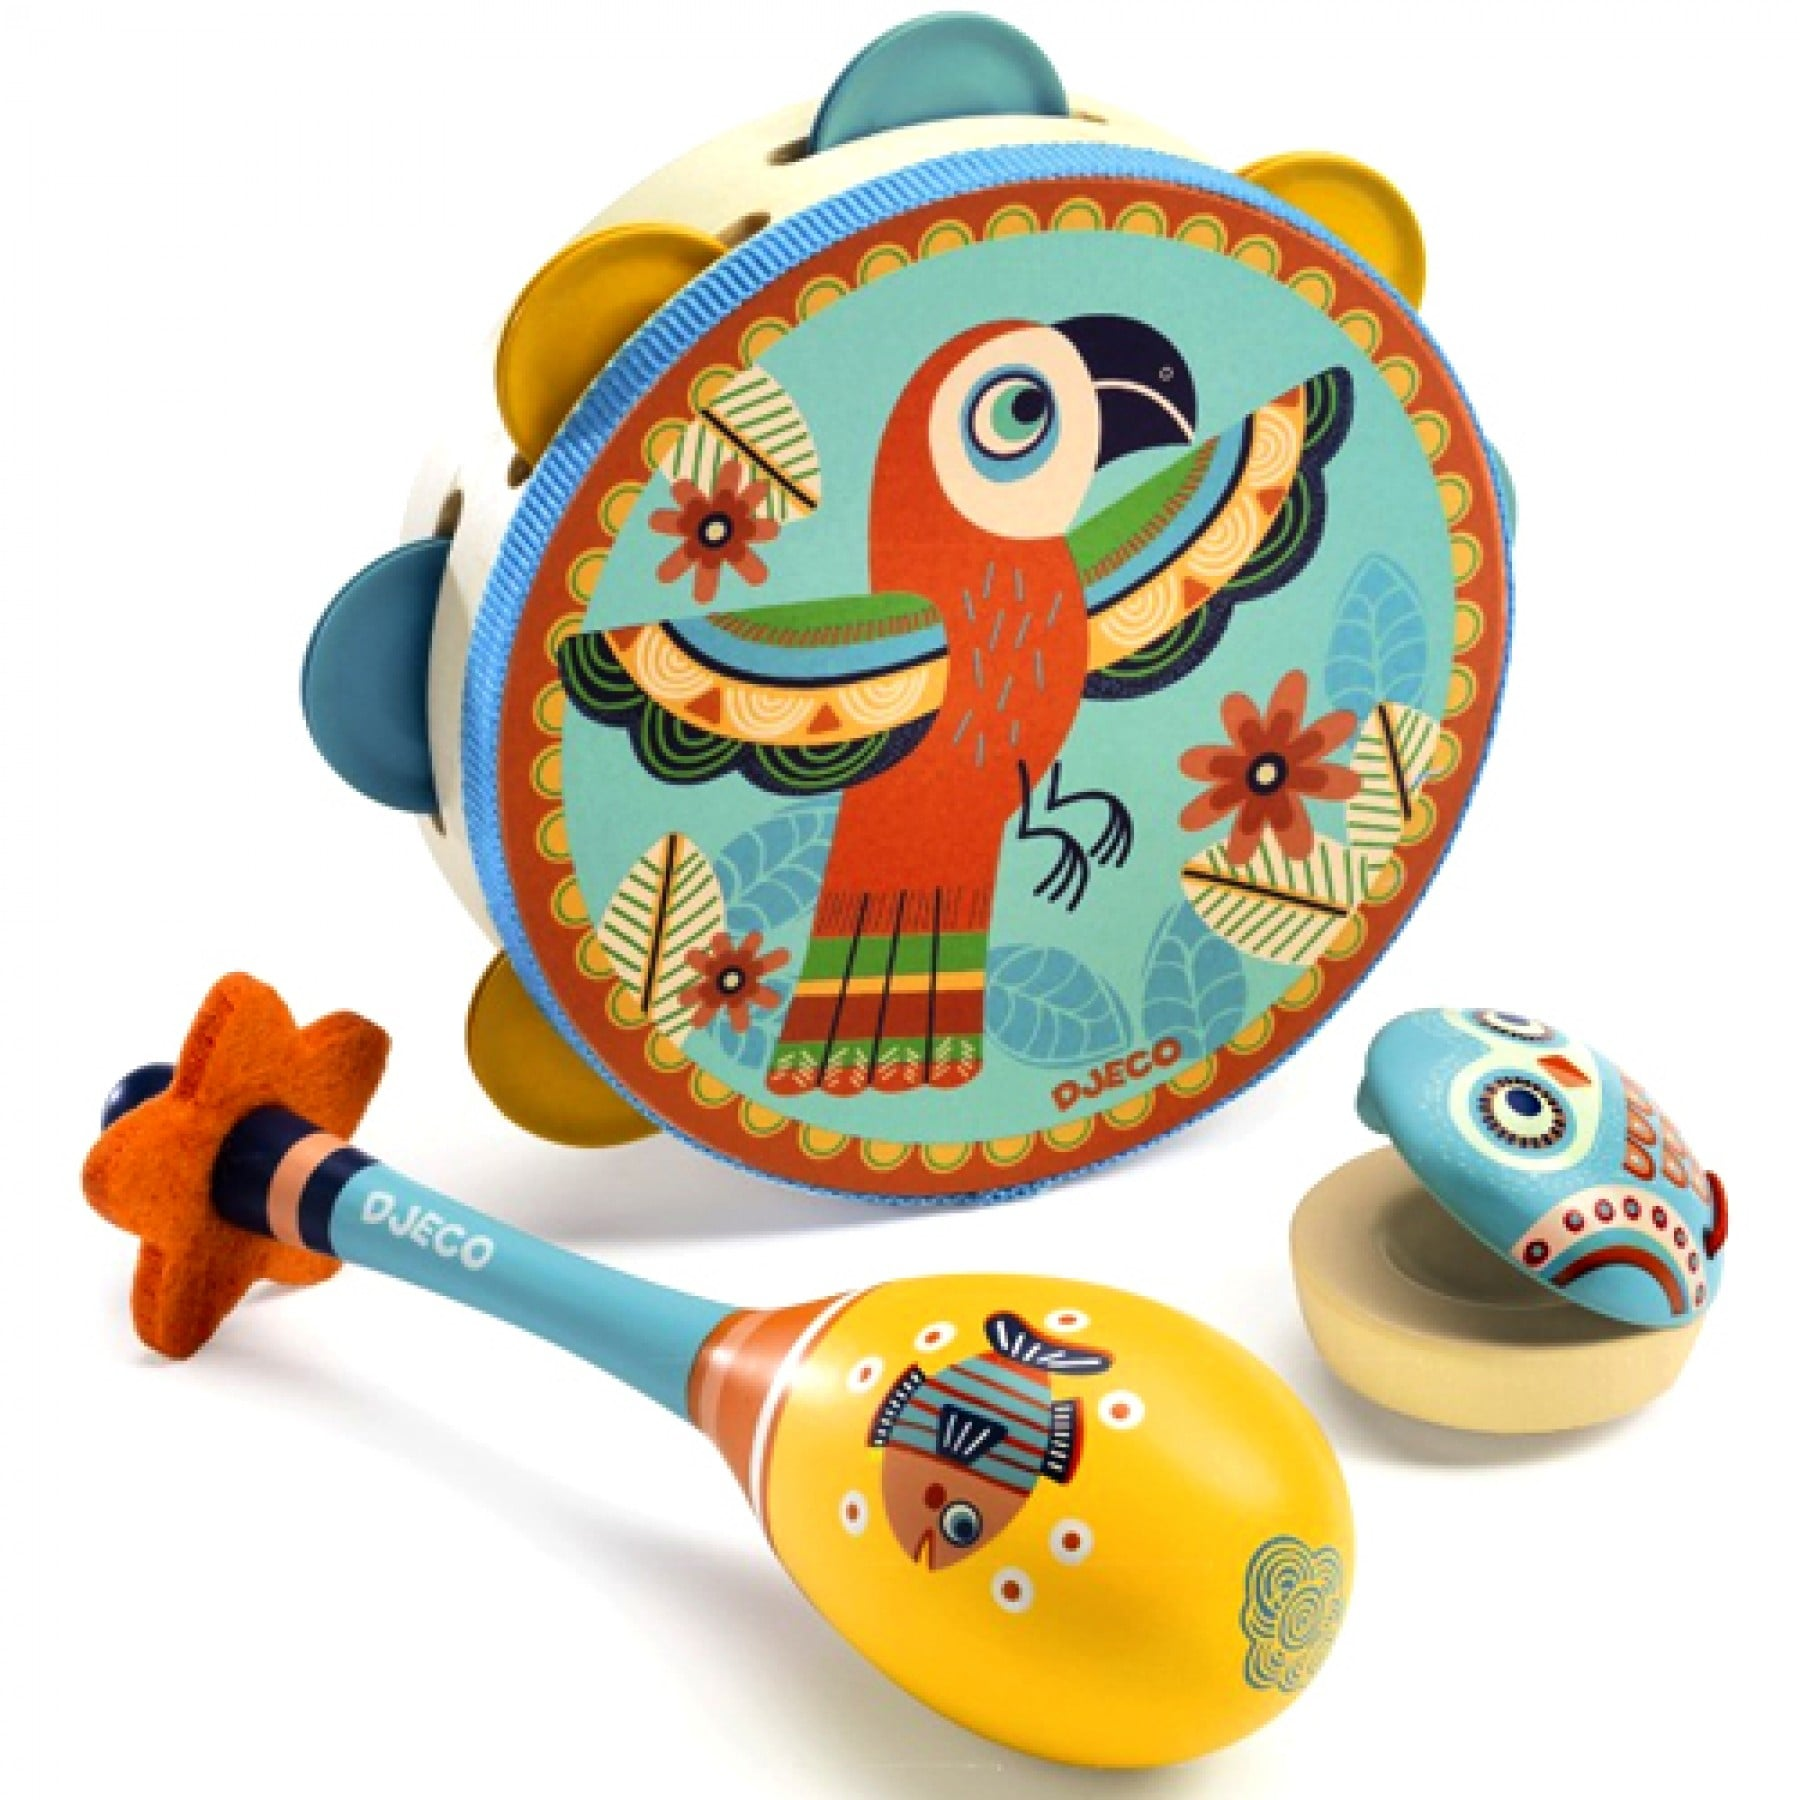 the joy of new djeco whirligig toys time to get musical with this charming first instrument set containing a tambourine maracas and castanets all presented in a beautiful box